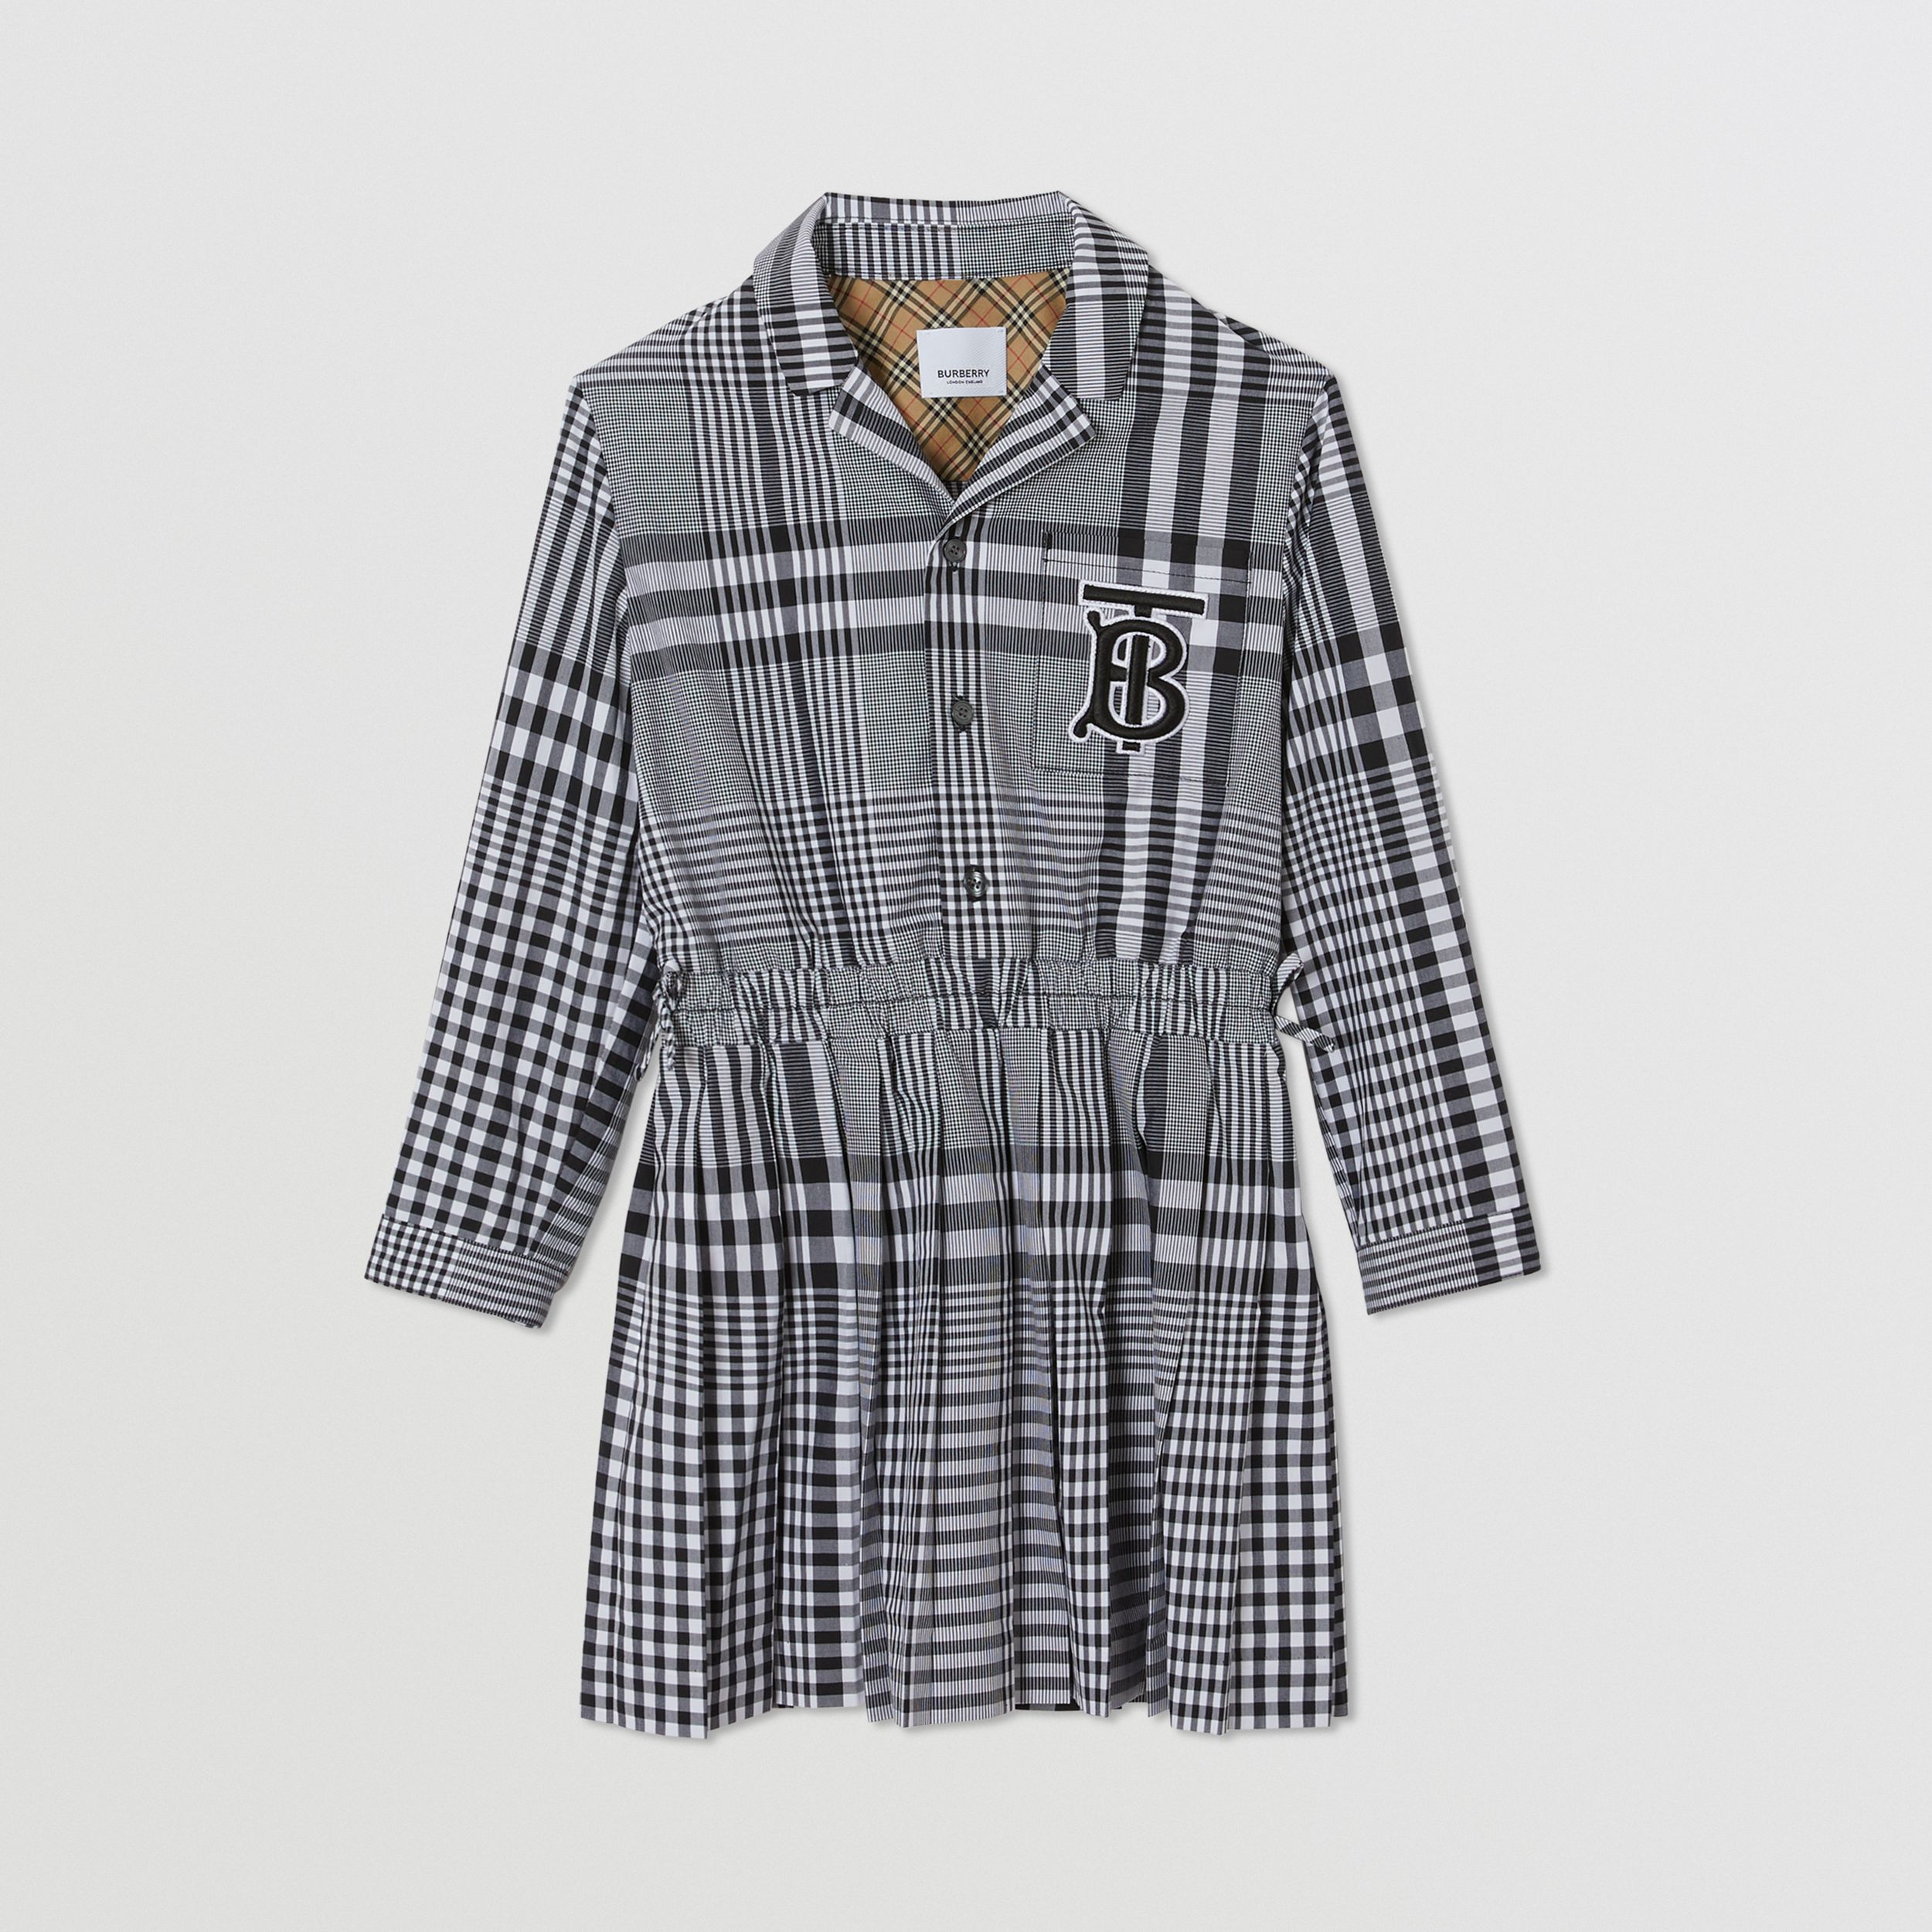 Long-sleeve Monogram Motif Check Cotton Dress in Black | Burberry - 1